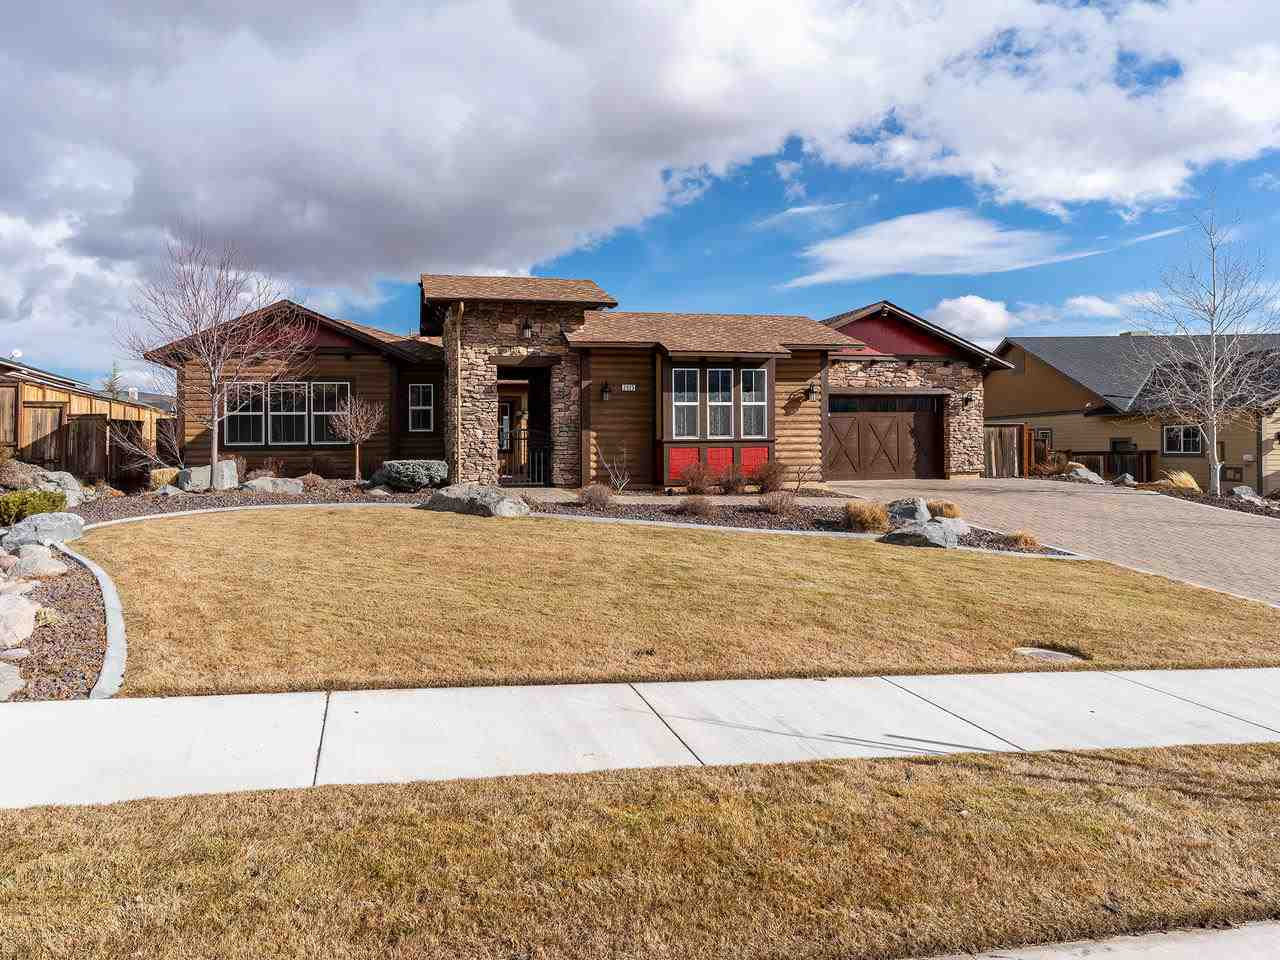 Single Family Home for Active at 2923 Cloudburst Canyon Drive 2923 Cloudburst Canyon Drive Genoa, Nevada 89411 United States